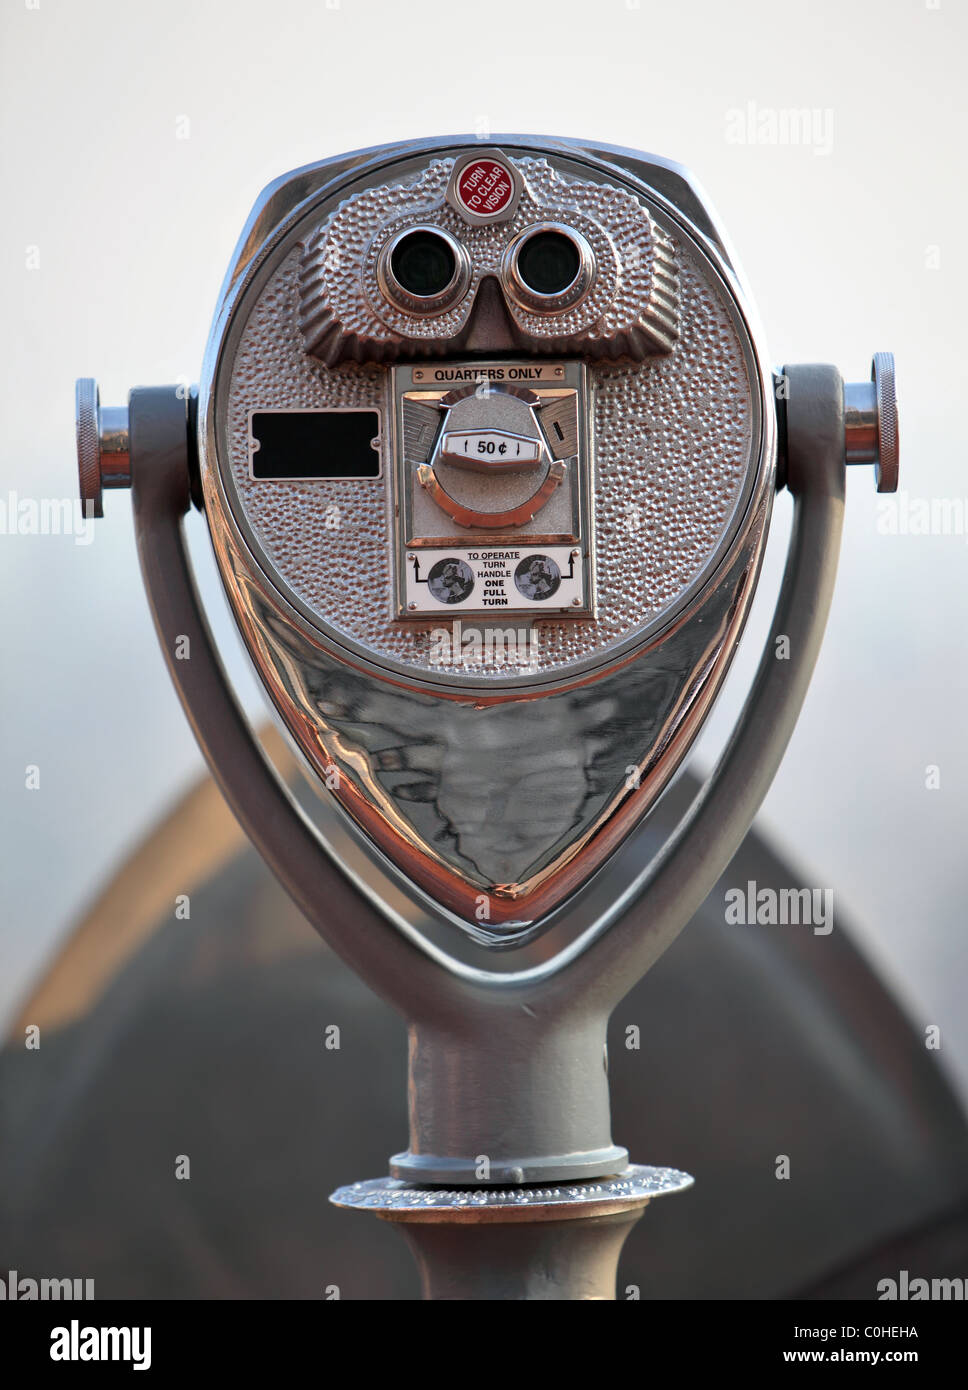 Silver coin operated pay binoculars deco style - Stock Image